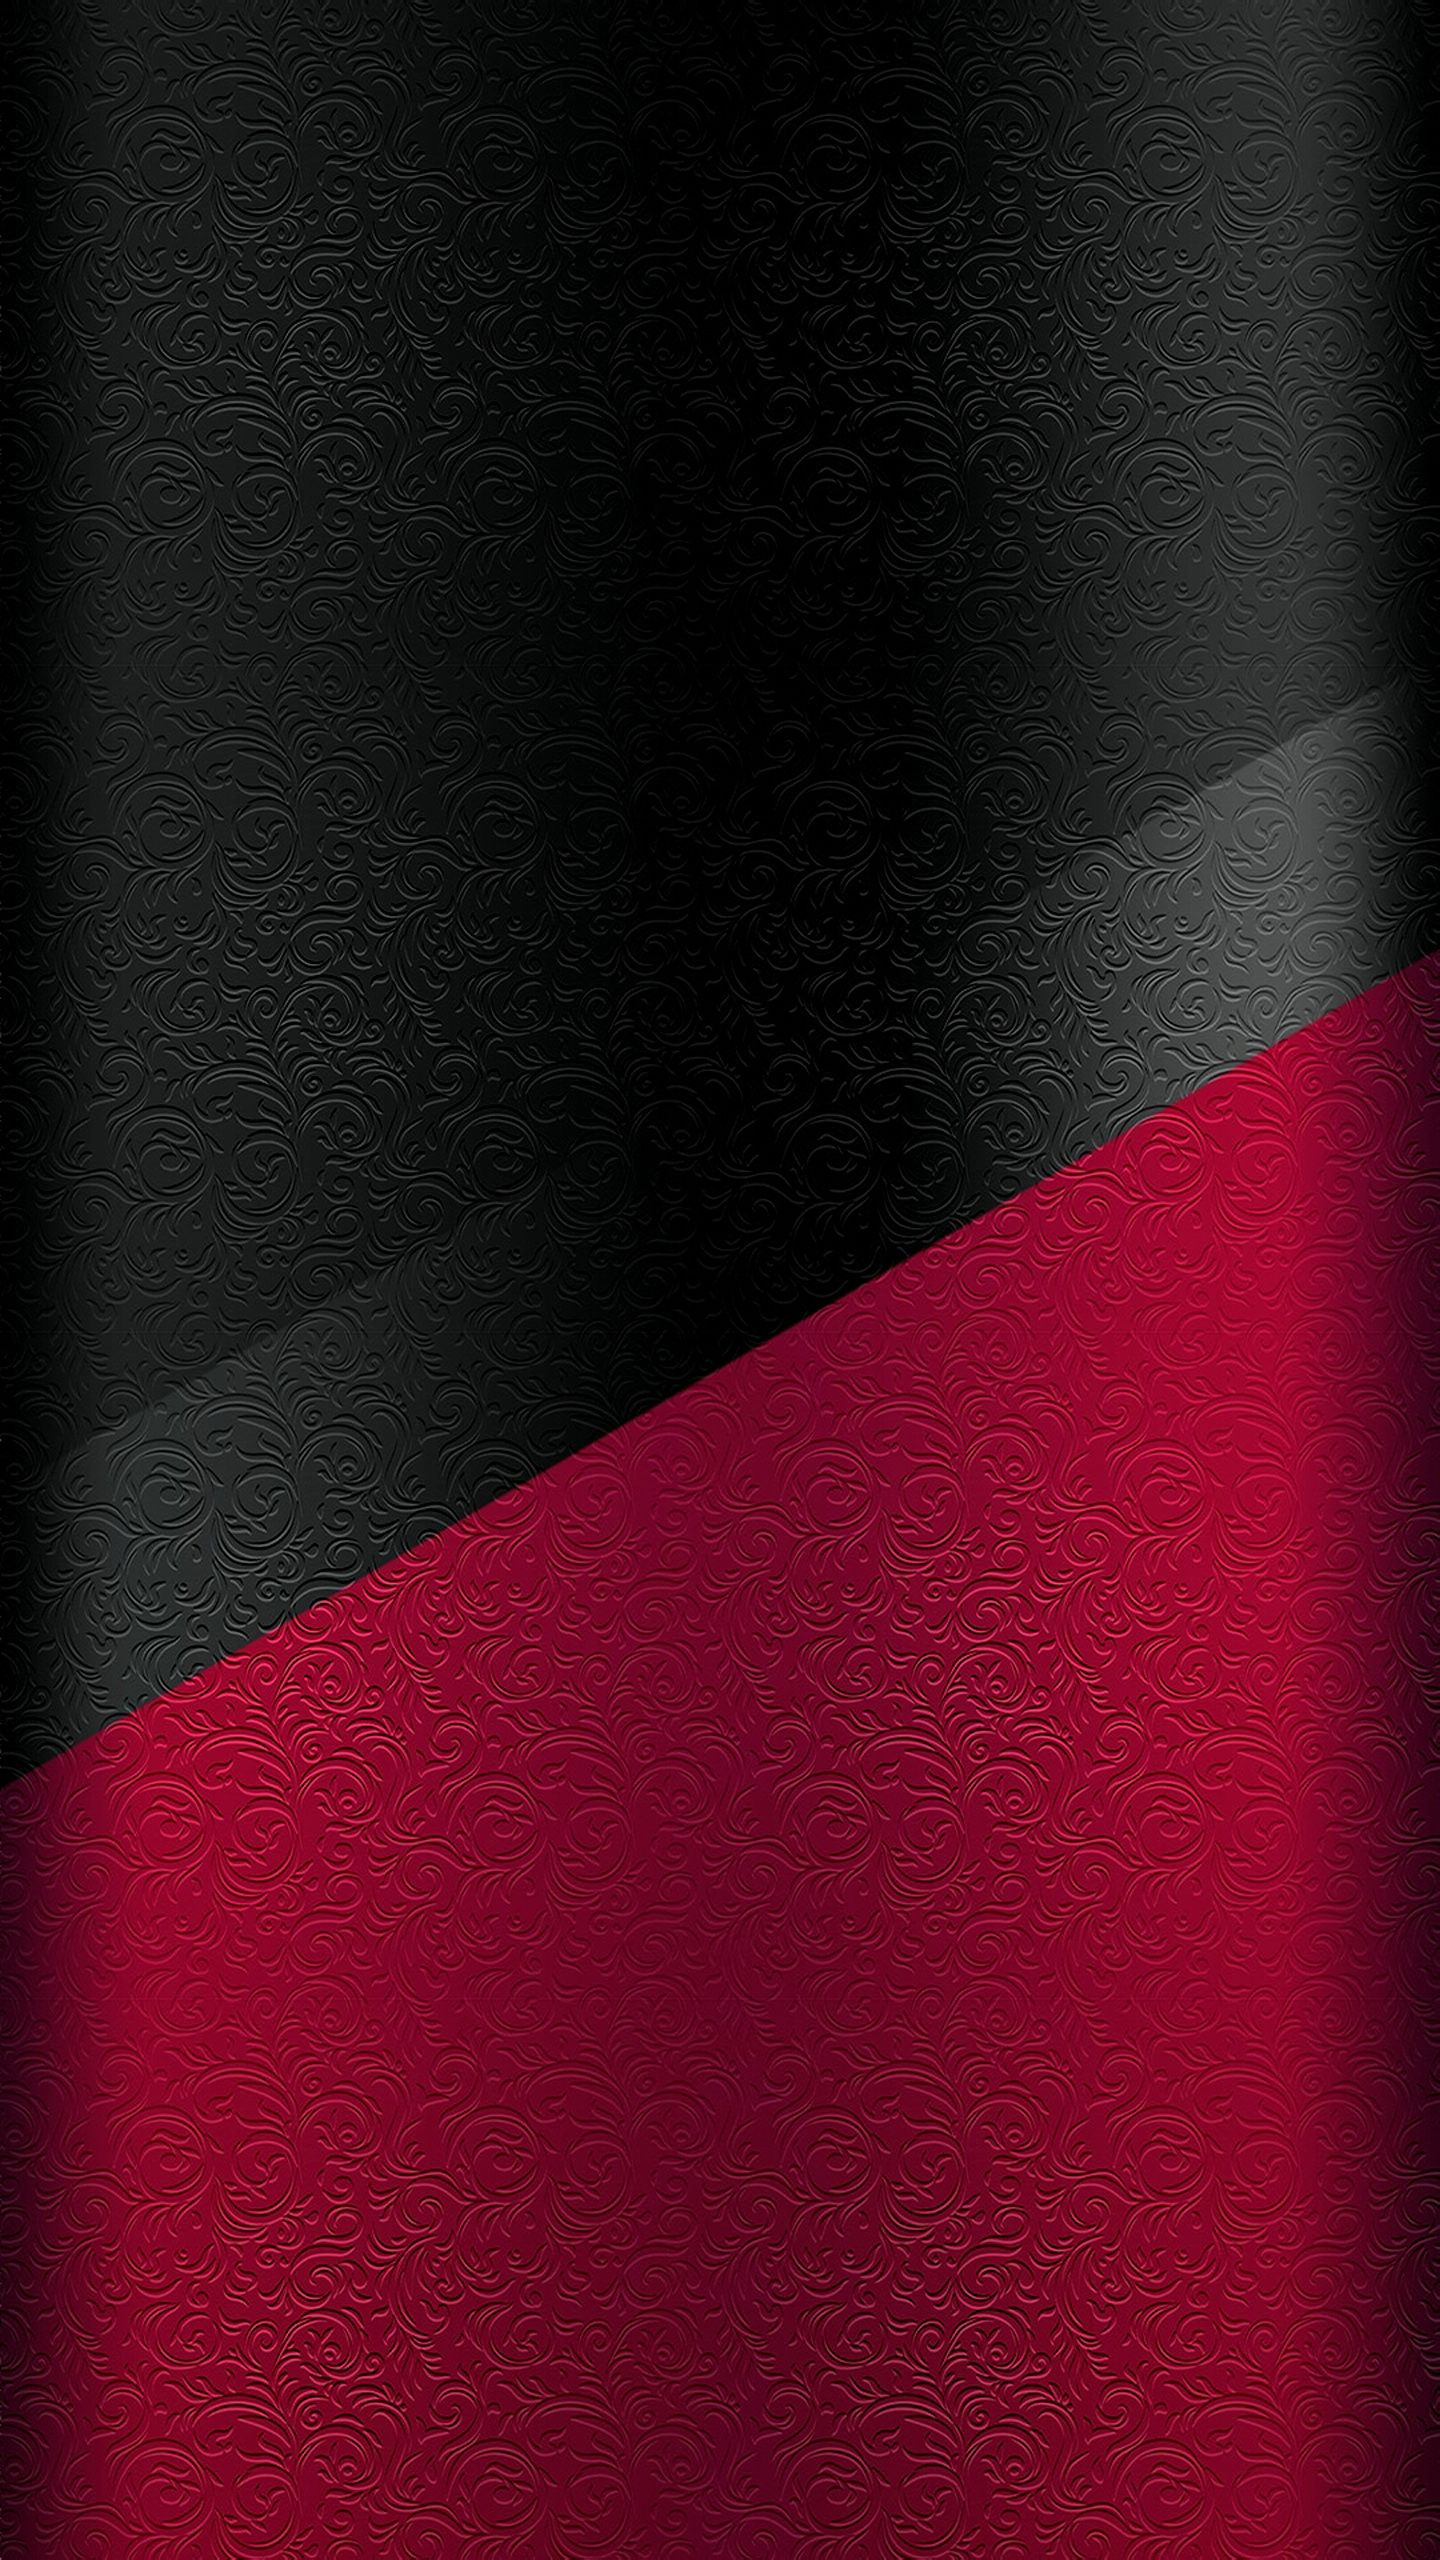 Dark S7 Edge Wallpaper 08   Black Background and Silver Line Red 1440x2560